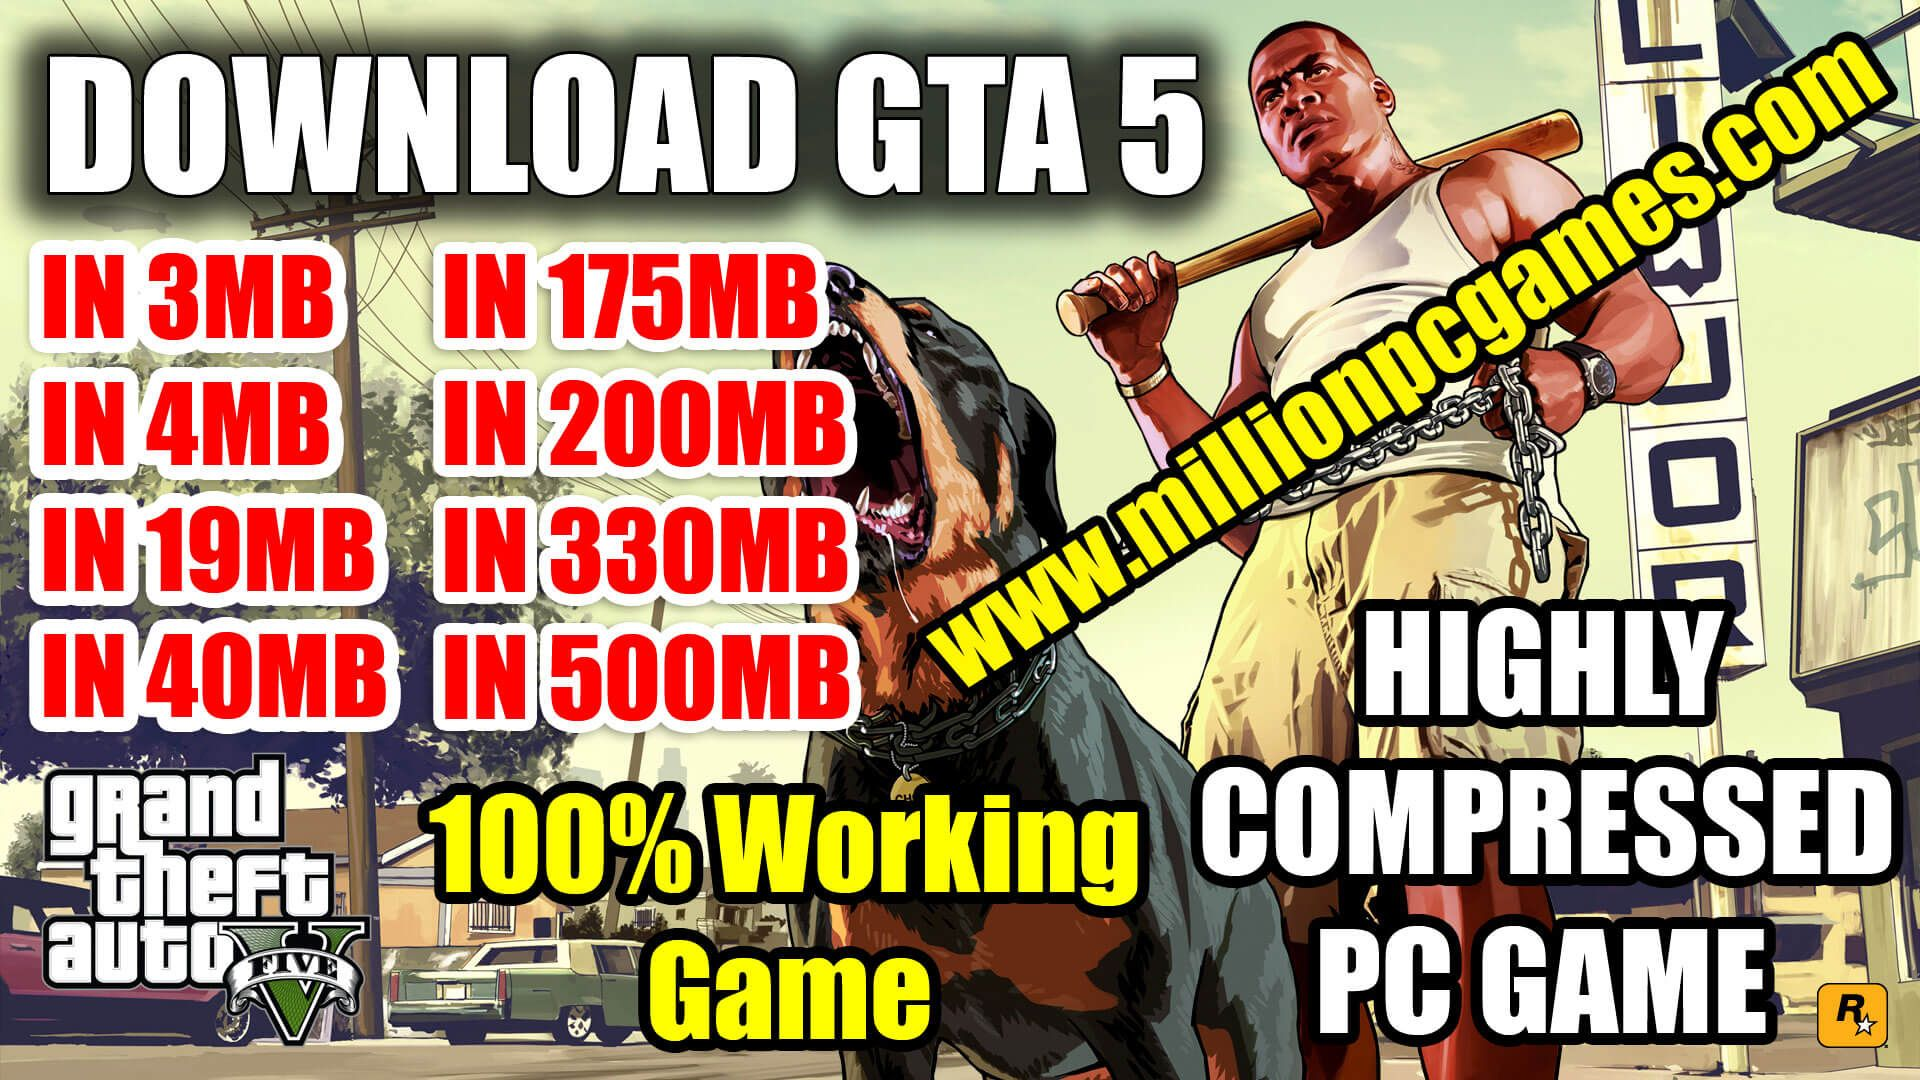 Gta 5 Highly Compressed In 3mb 4mb 40mb 50mb 175mb 200mb 300mb